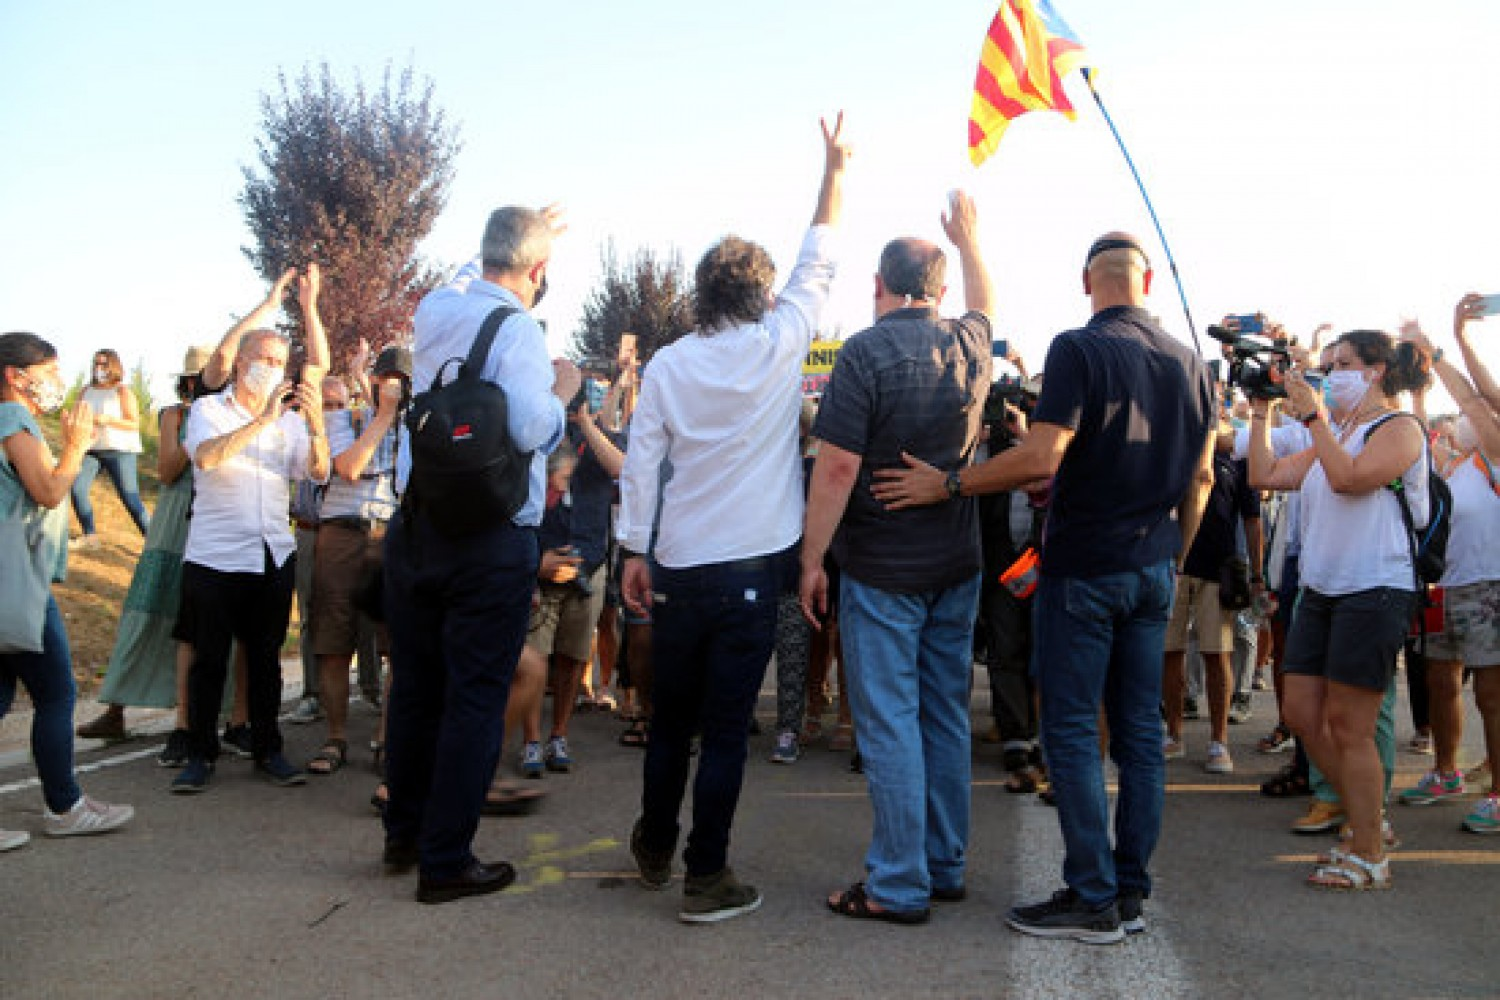 Jailed Catalan leaders greet pro-independence protesters before entering prison after penitentiary privileges were removed last July (by Estefania Escolà)